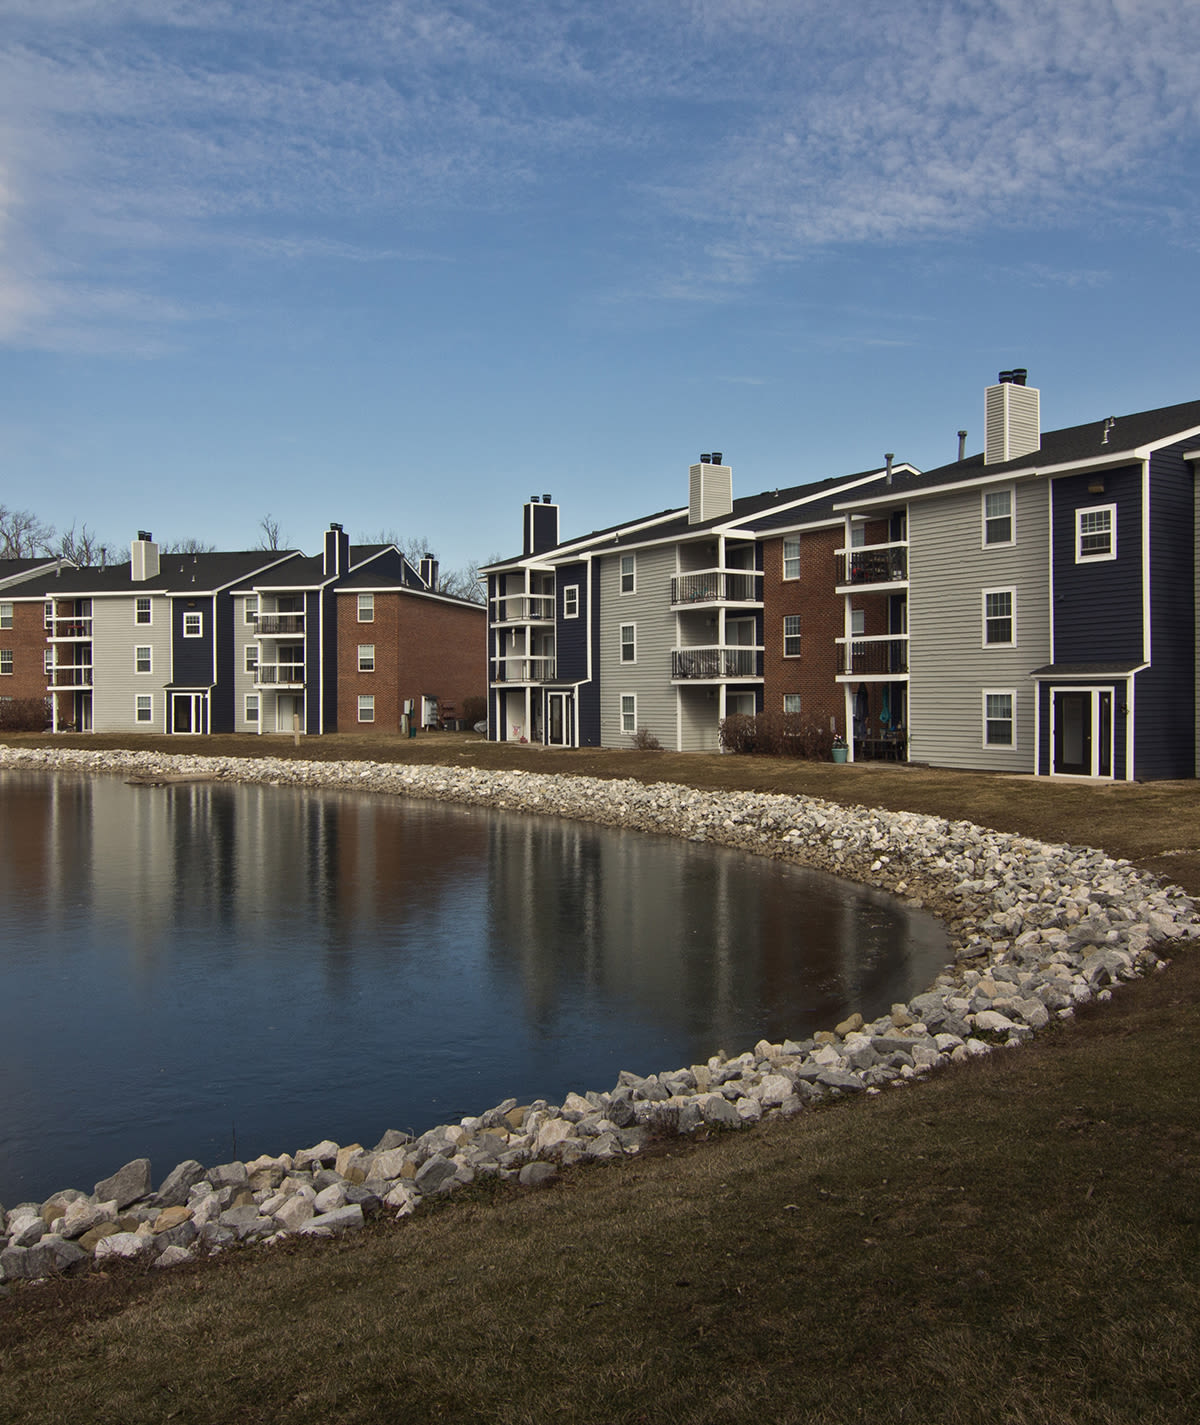 Phenomenal view of Hidden Lakes Apartment Homes in Miamisburg, OH